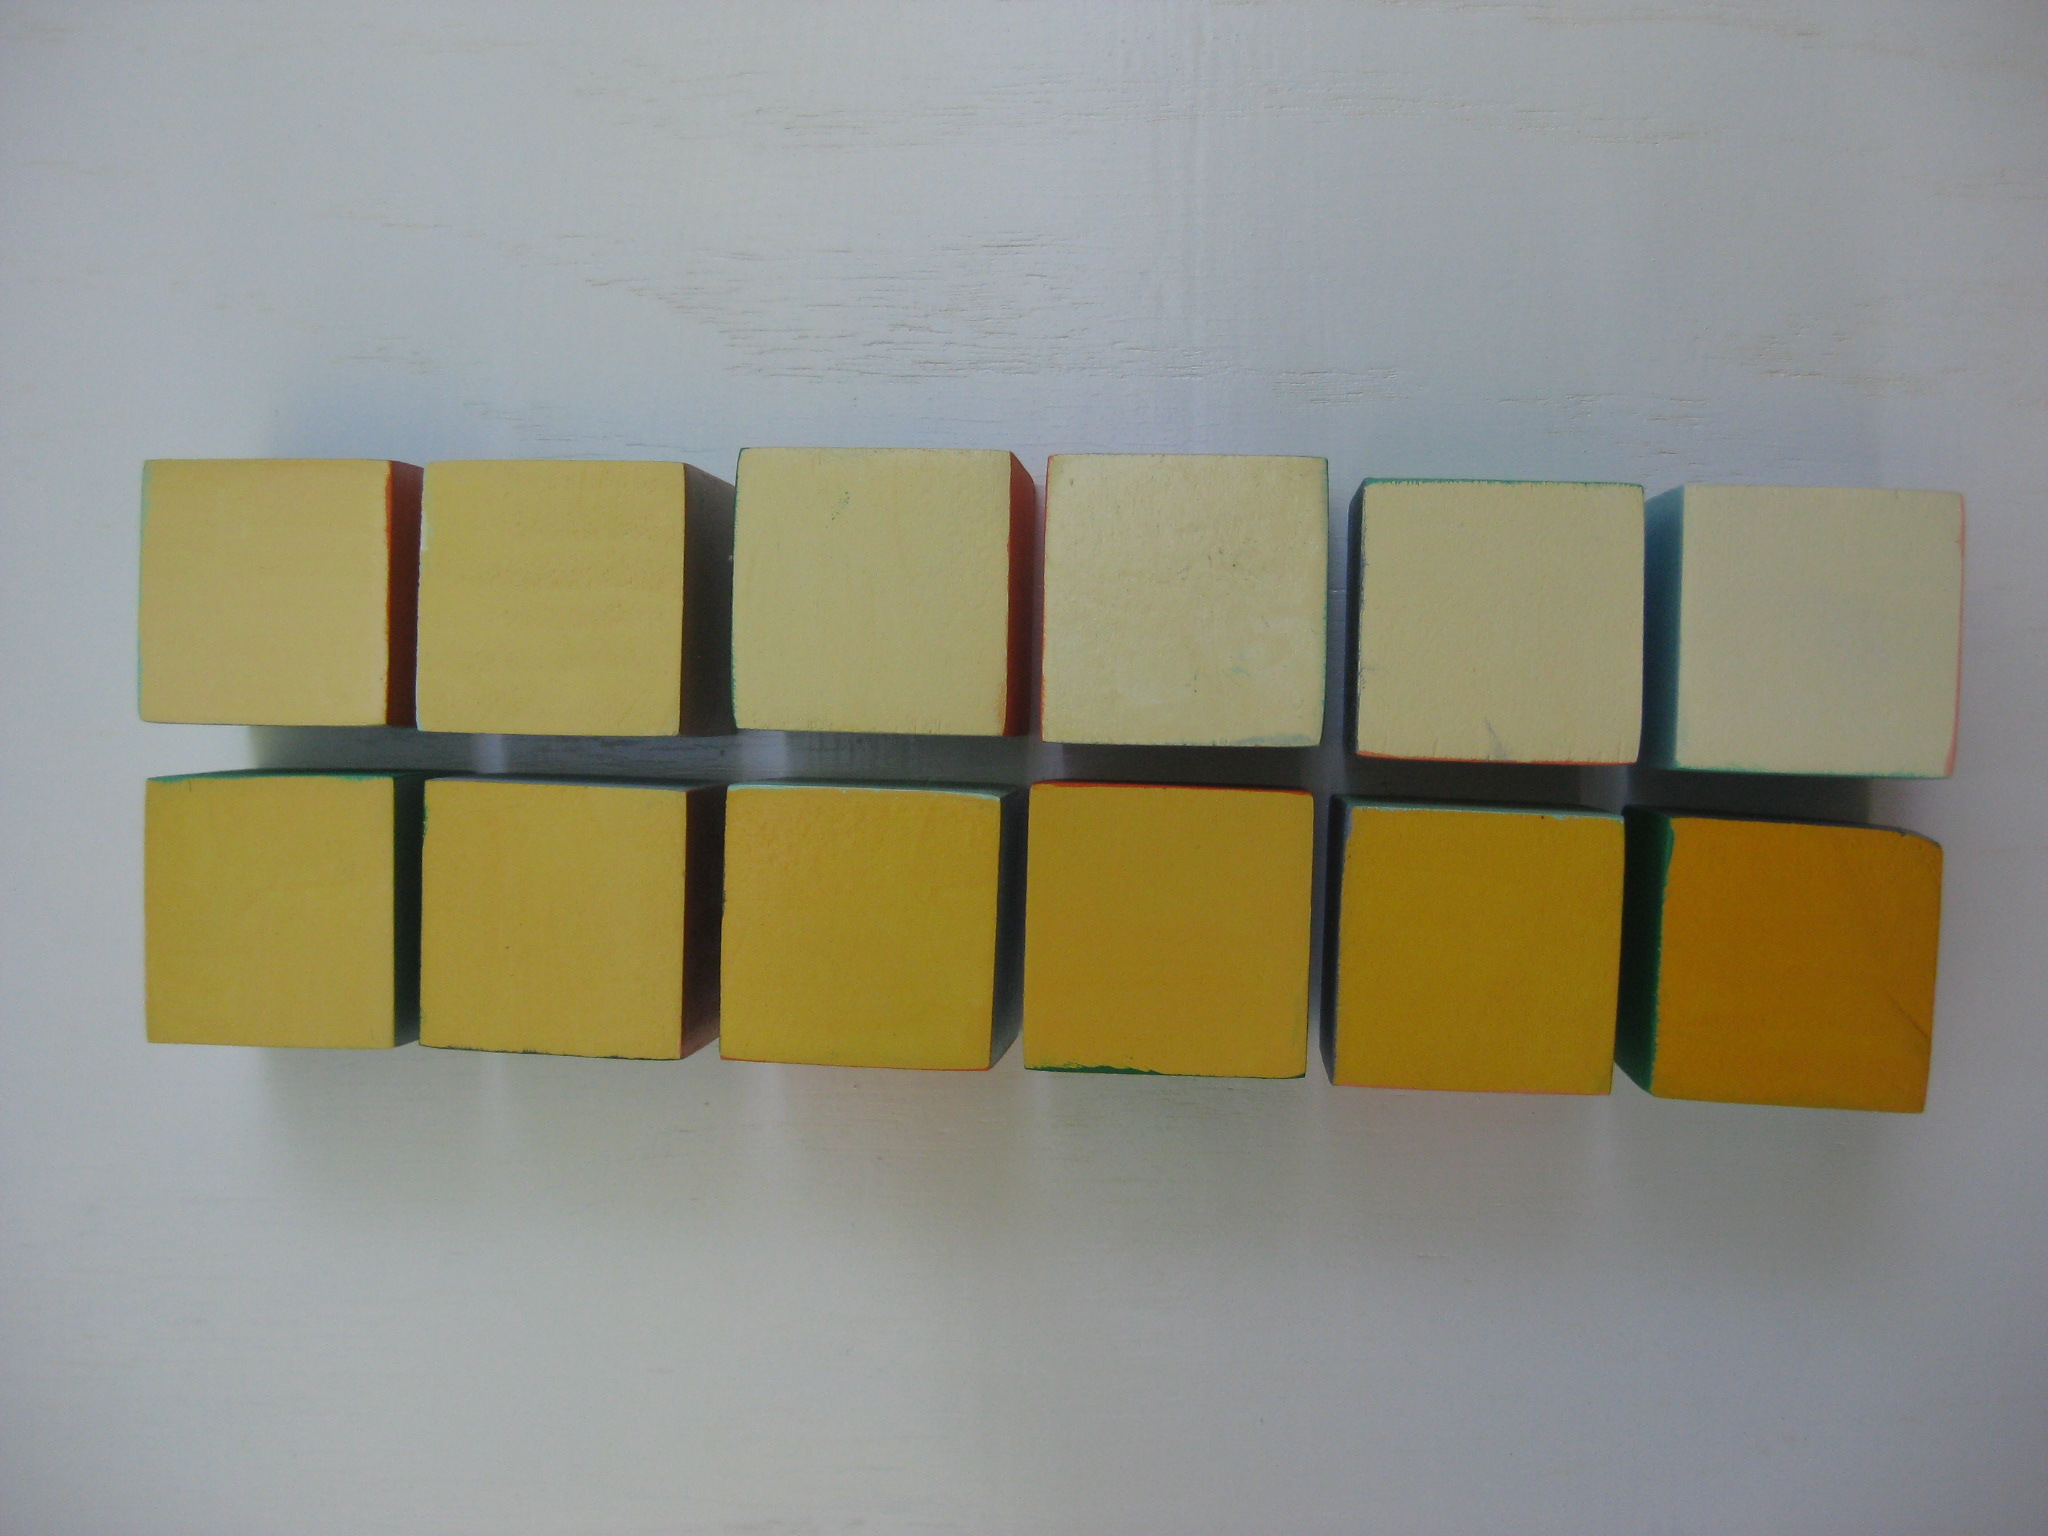 Different Shades Of Yellow Paint Brilliant Of Different Shades Of Yellow Paint 12 shades of mustard yellow. Image